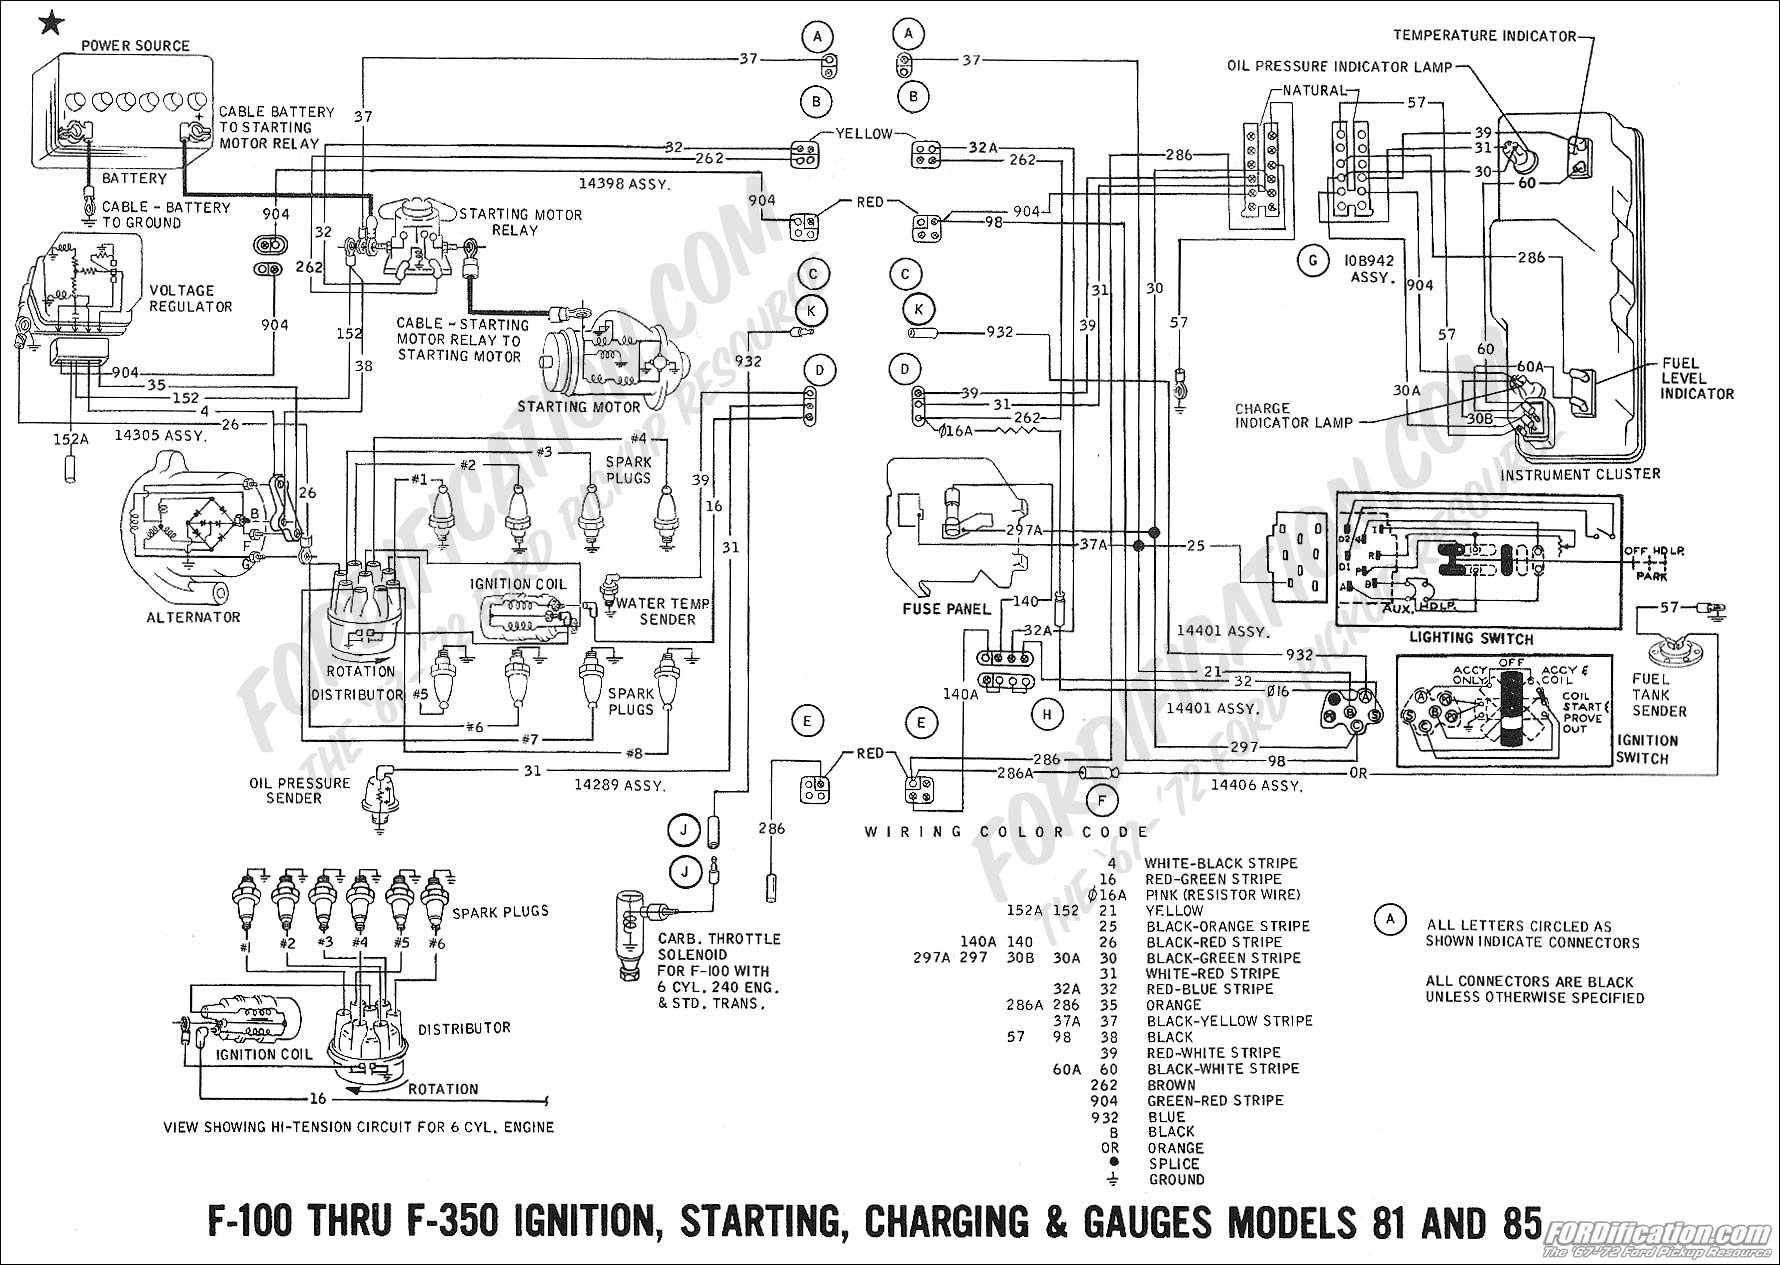 1968 Falcon Wiring Diagram Data Electrical For 1960 Chevrolet Corvair All Models Ford Charging System Best Secret U2022 Radiator